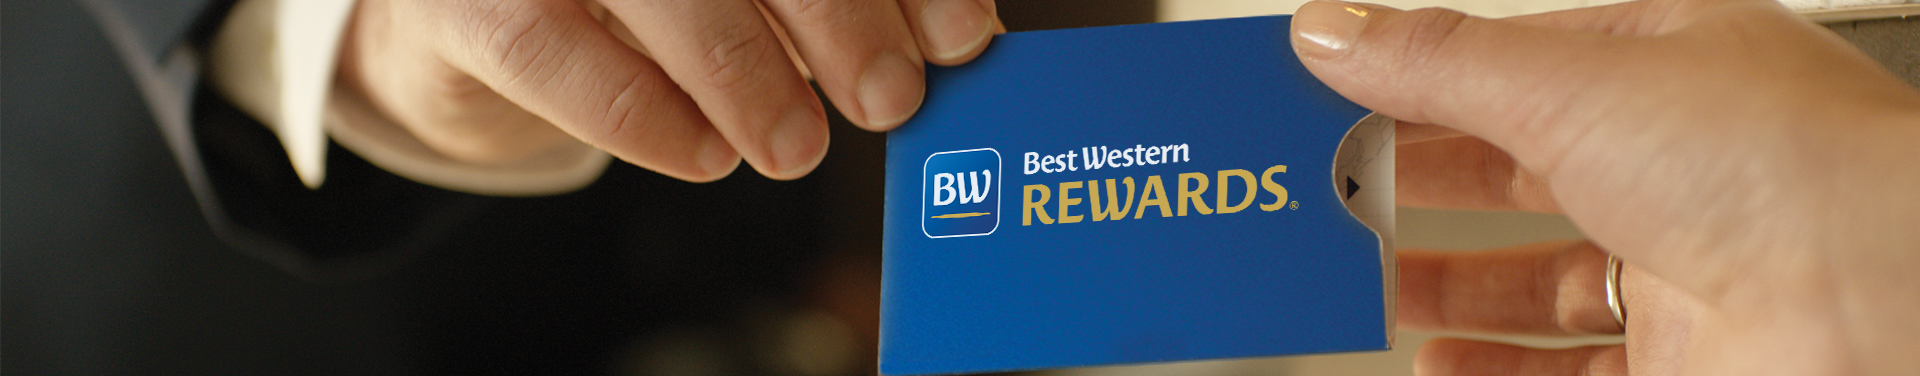 how to join best western rewards